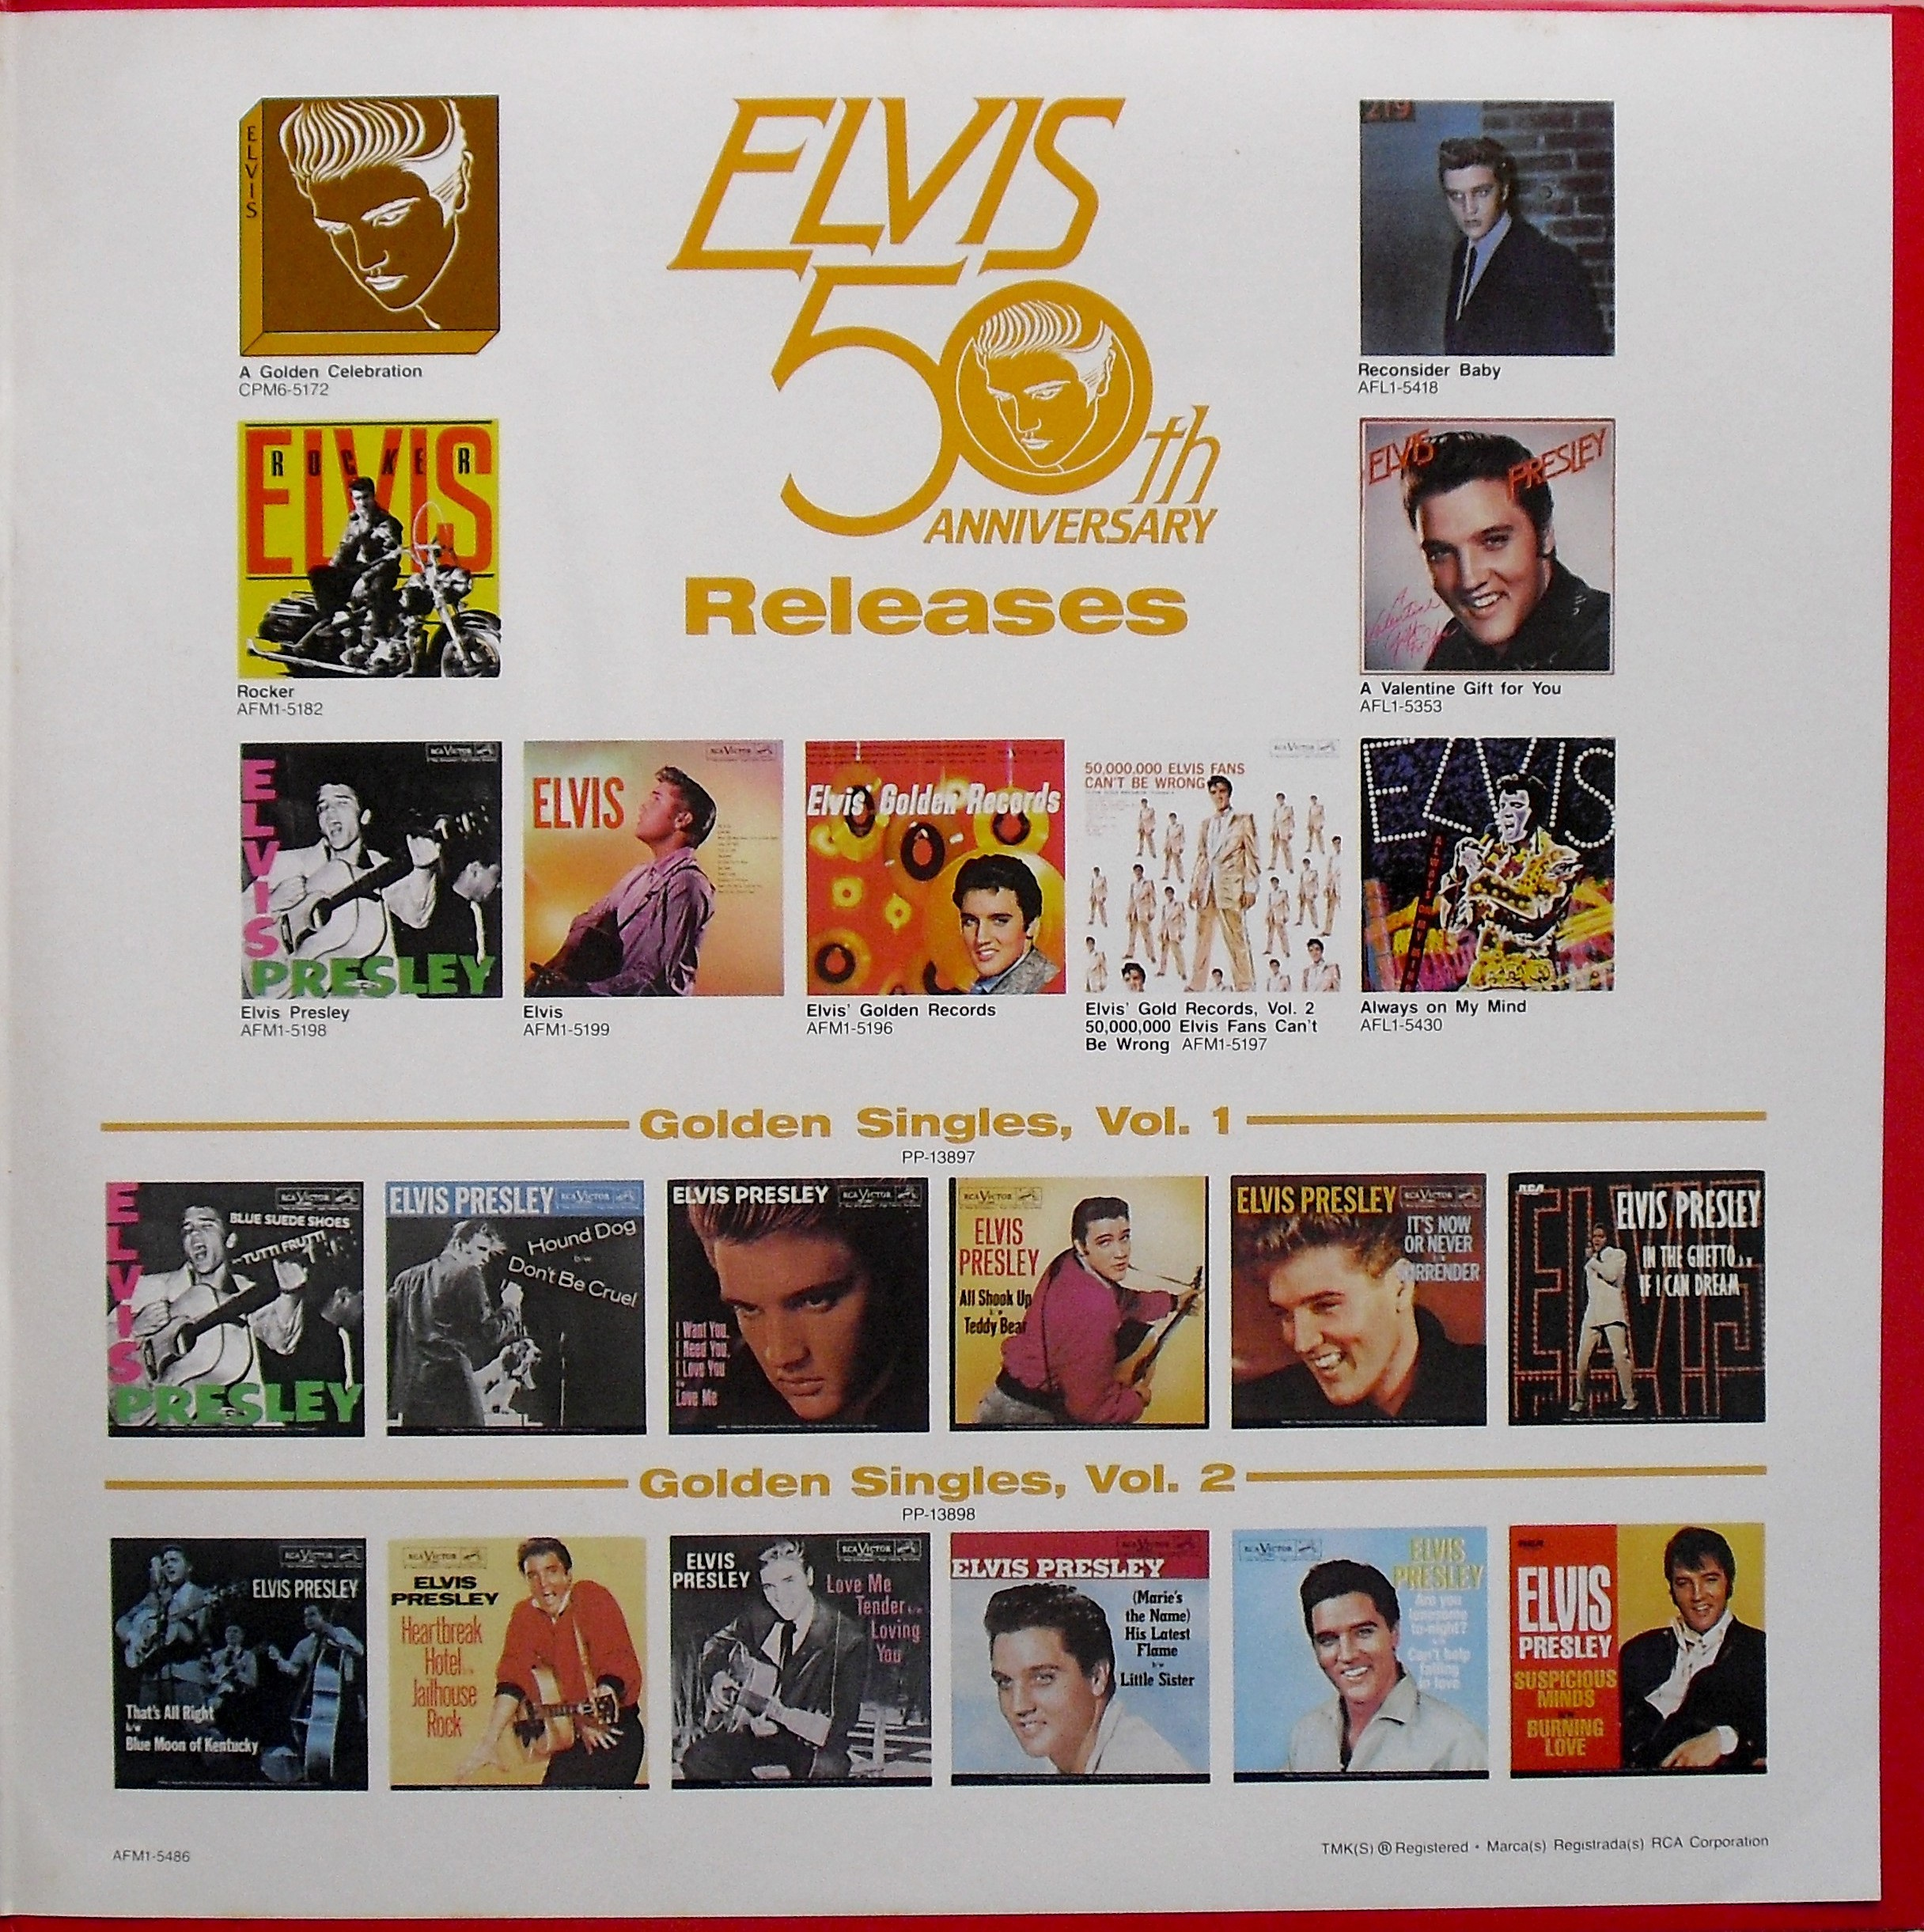 ELVIS' CHRISTMAS ALBUM 0159fmh